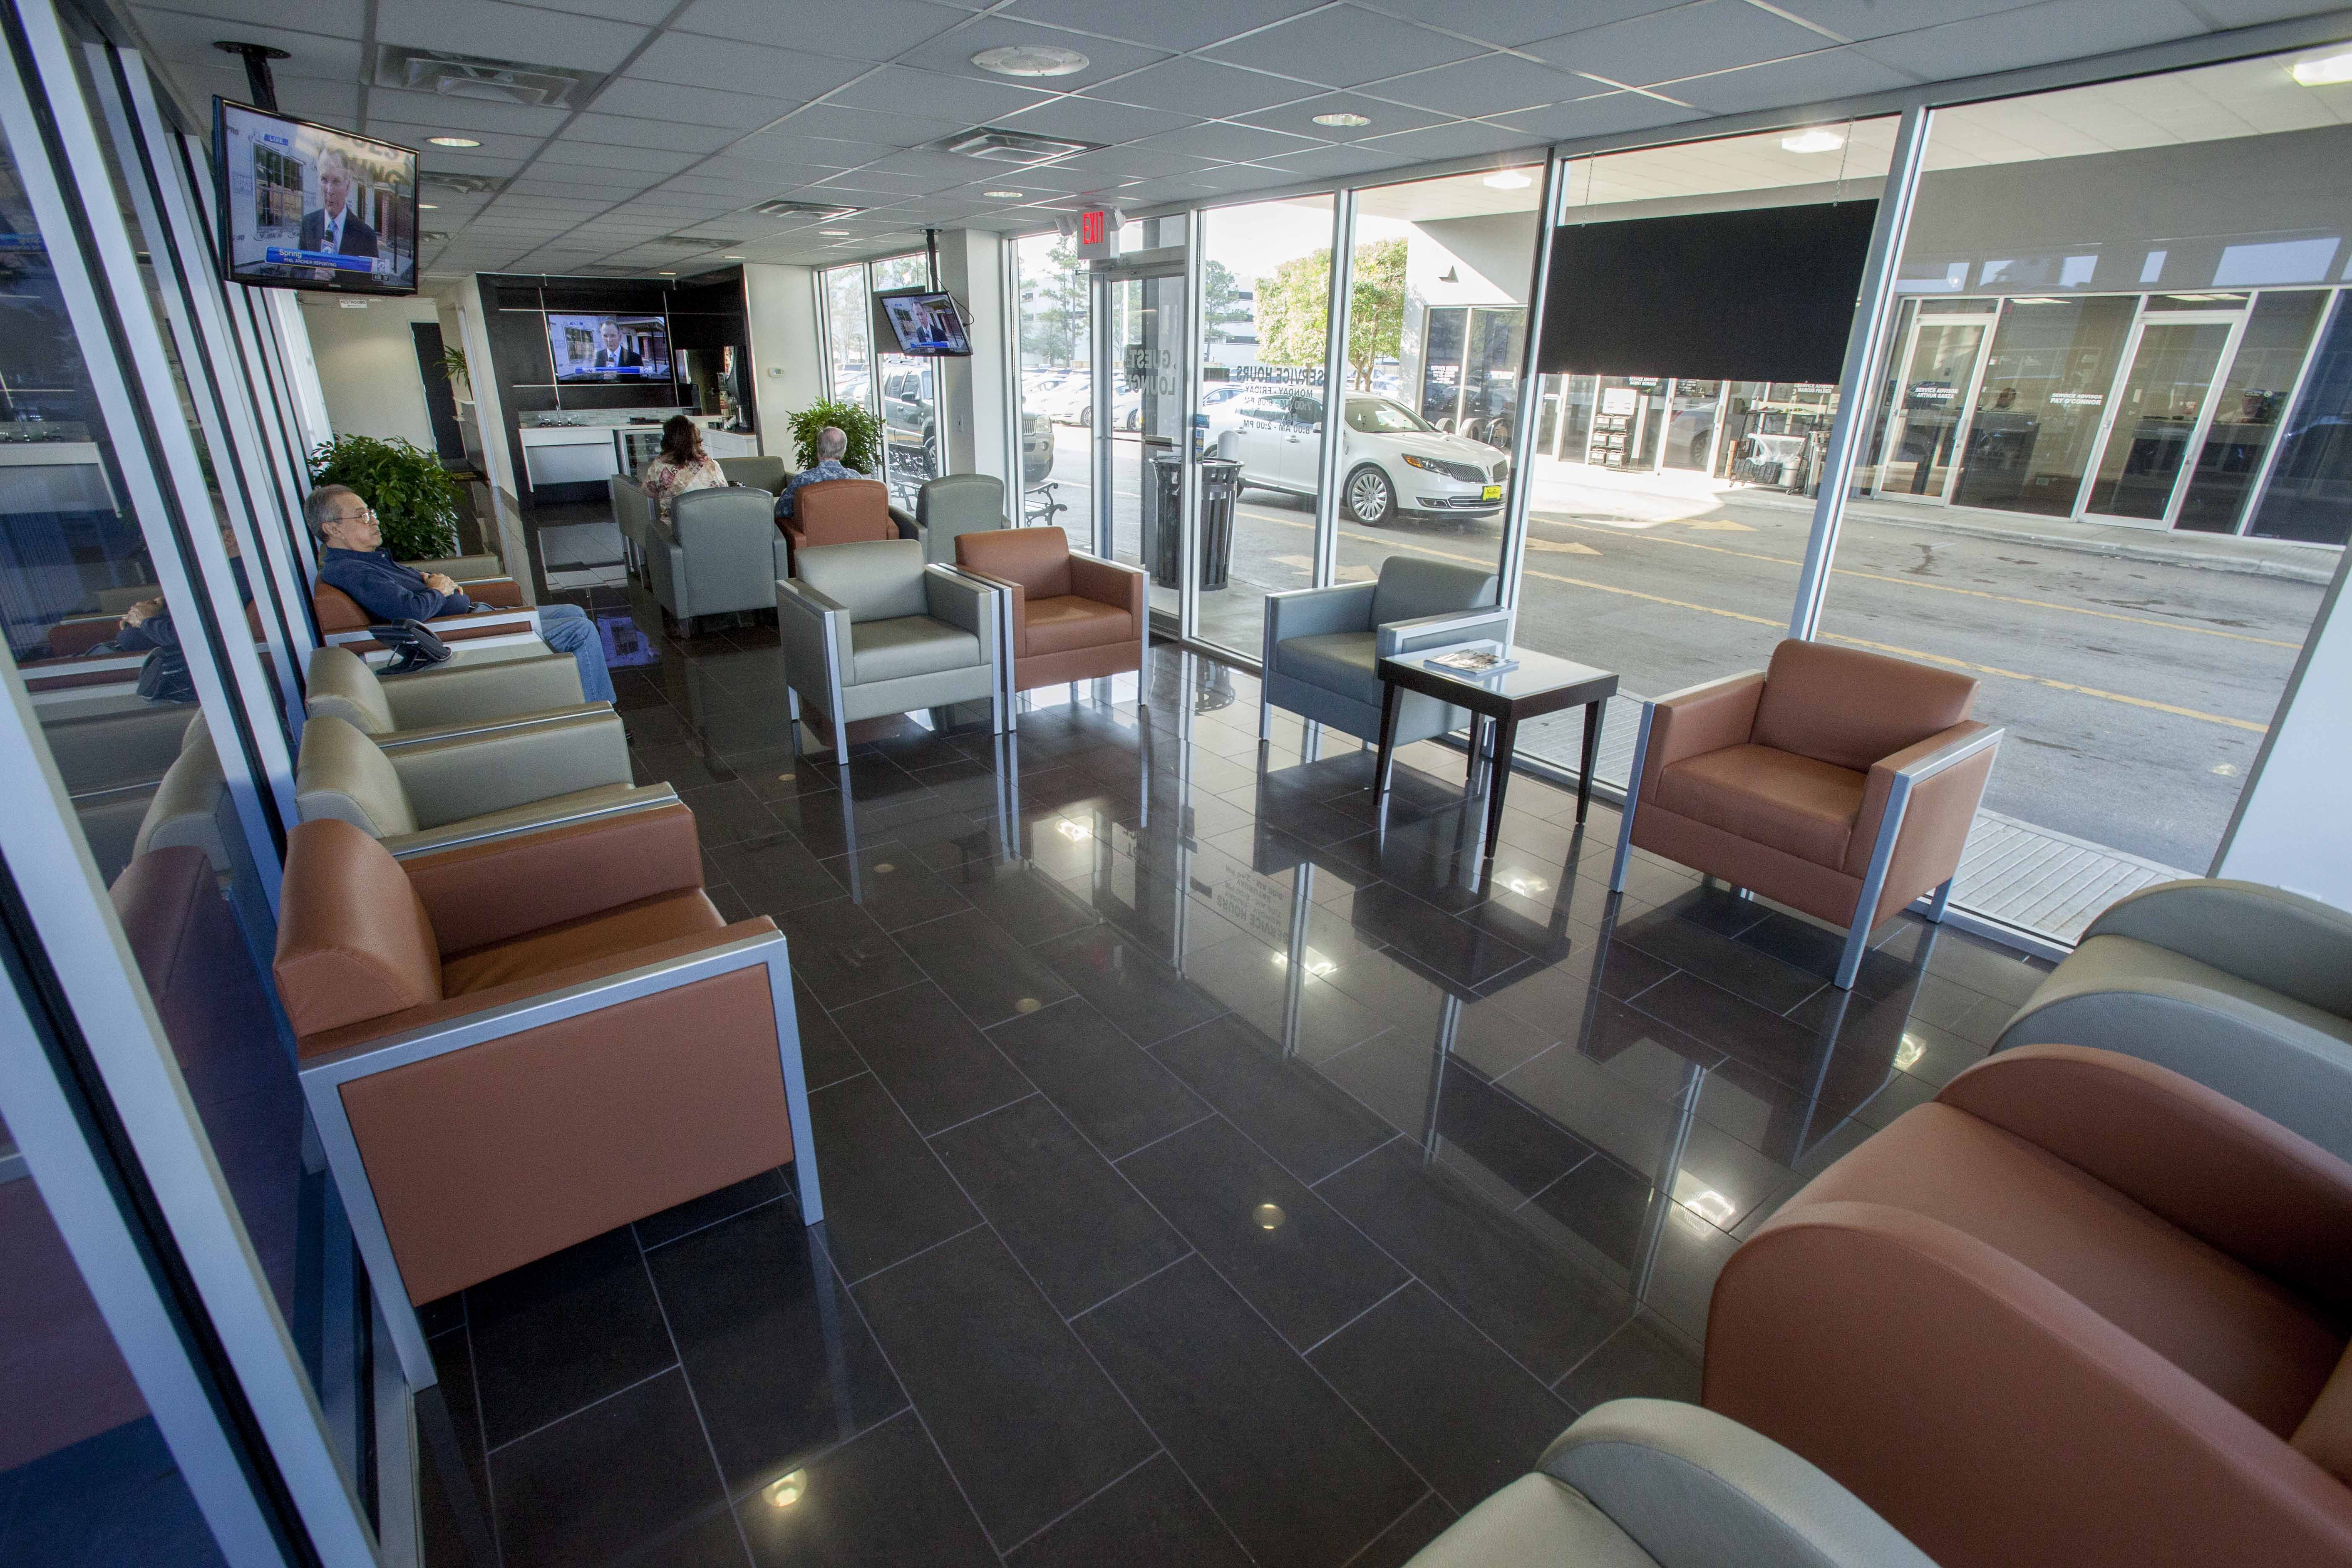 Spacious Waiting Areas With Comfortable Seating For